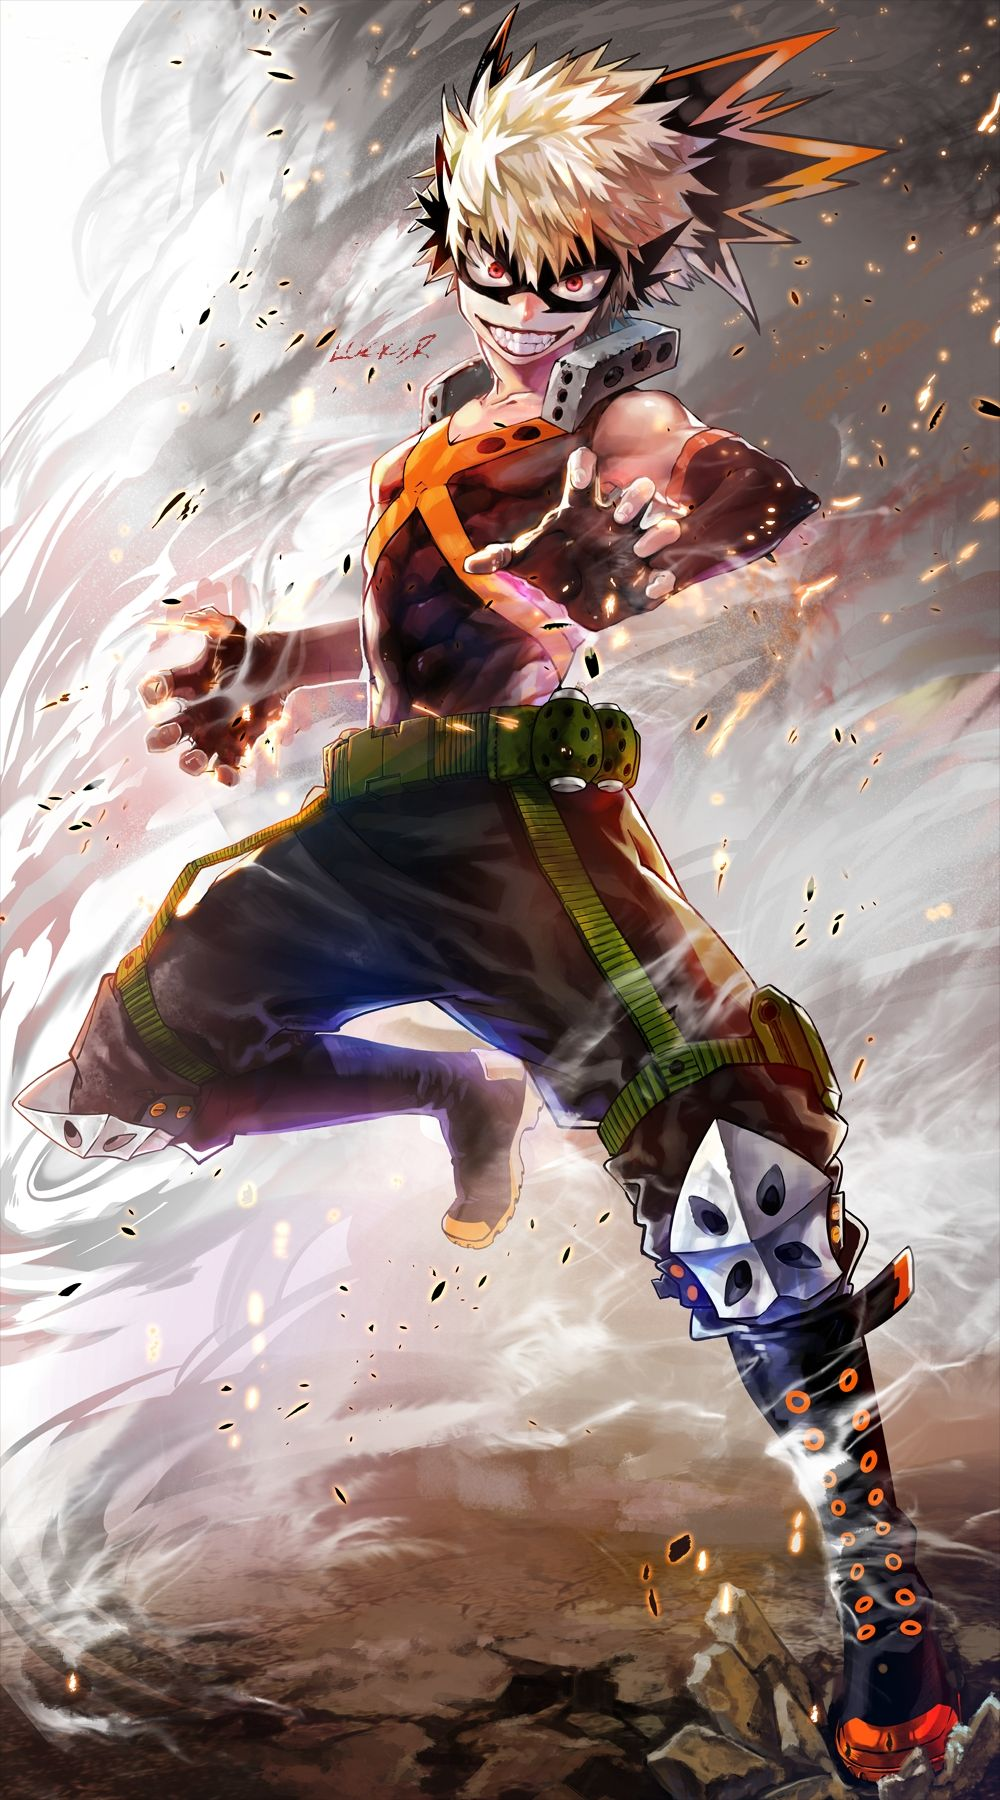 Download wallpapers from anime my hero academia for monitor with resolution 1024x768 and tags on page: My Hero Academia Bakugo Wallpapers - Top Free My Hero ...